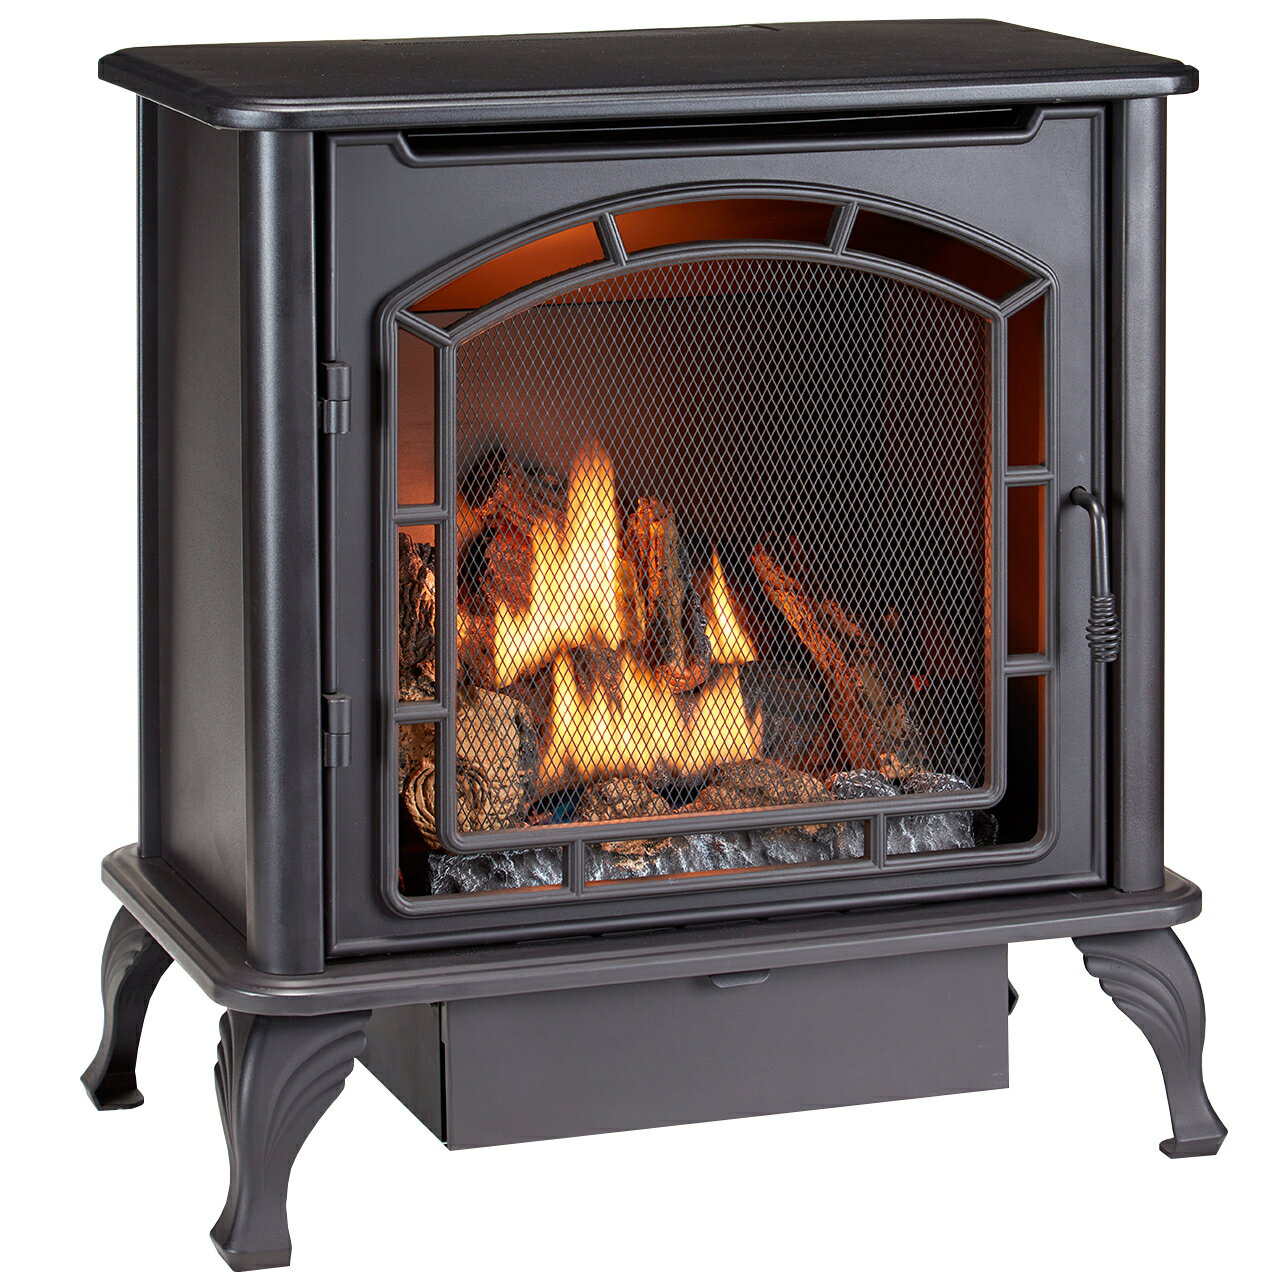 Factory Buys Direct Duluth Forge Dual Fuel Ventless Gas Stove